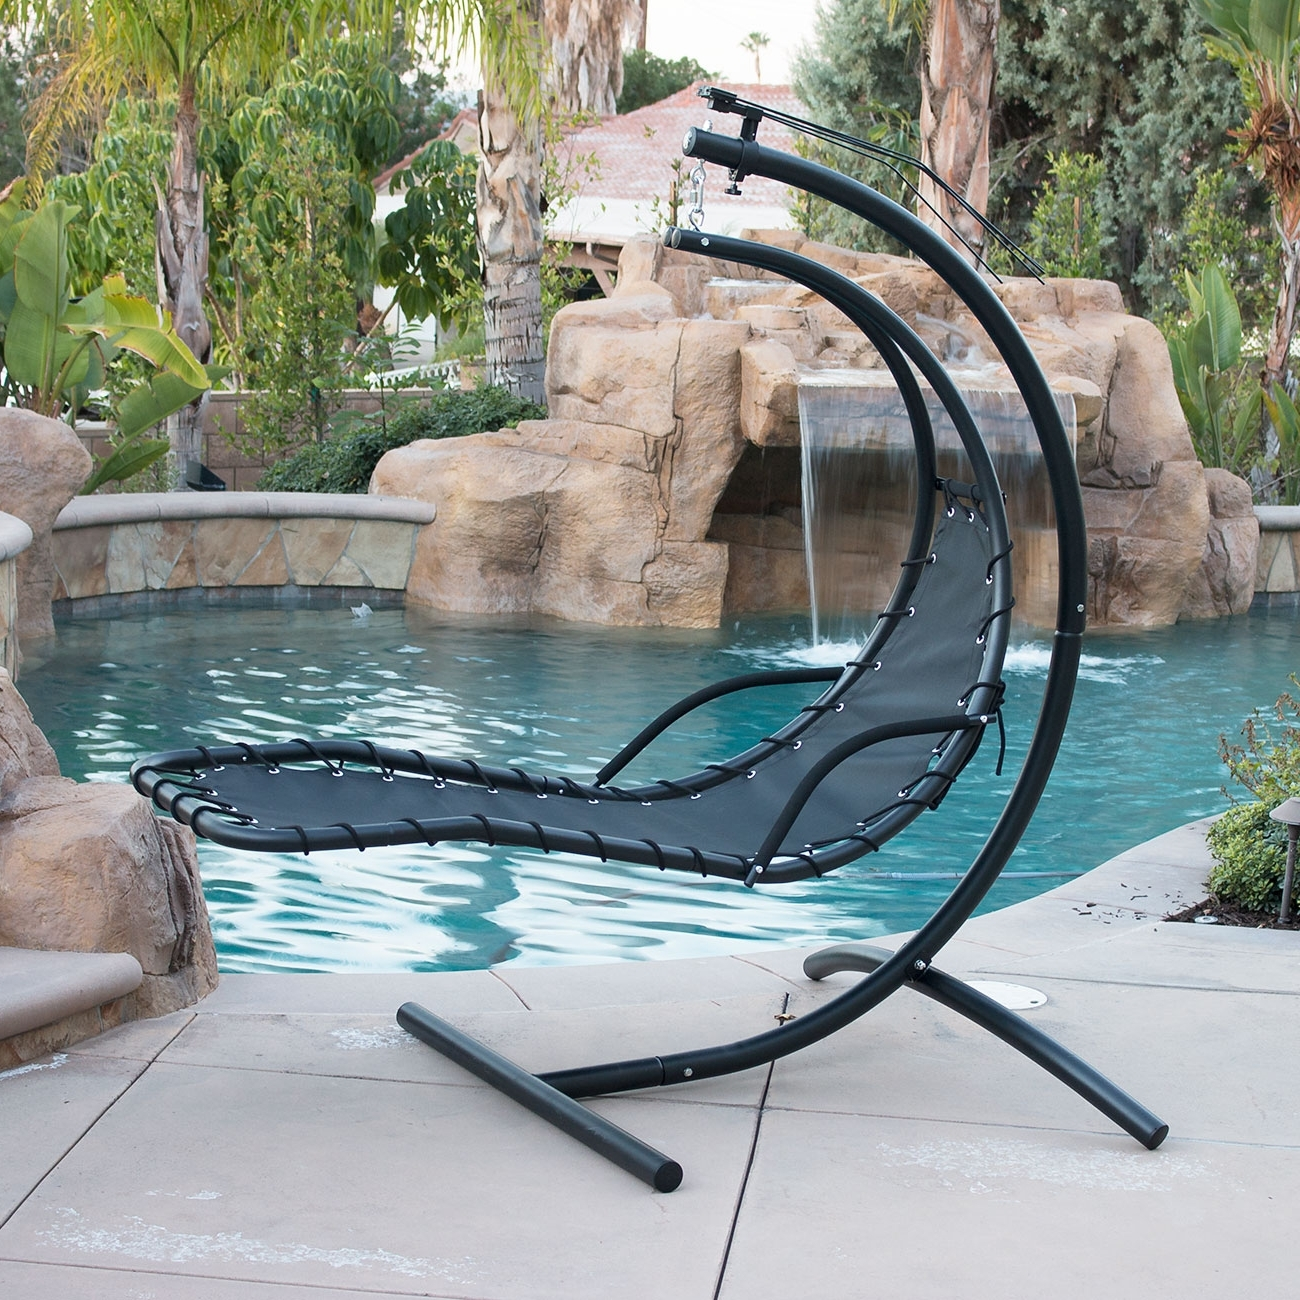 Hanging Chaise Lounge Chair Hammock Swing Canopy Glider Outdoor In Most Up To Date Chaise Lounge Chairs For Sunroom (View 10 of 15)